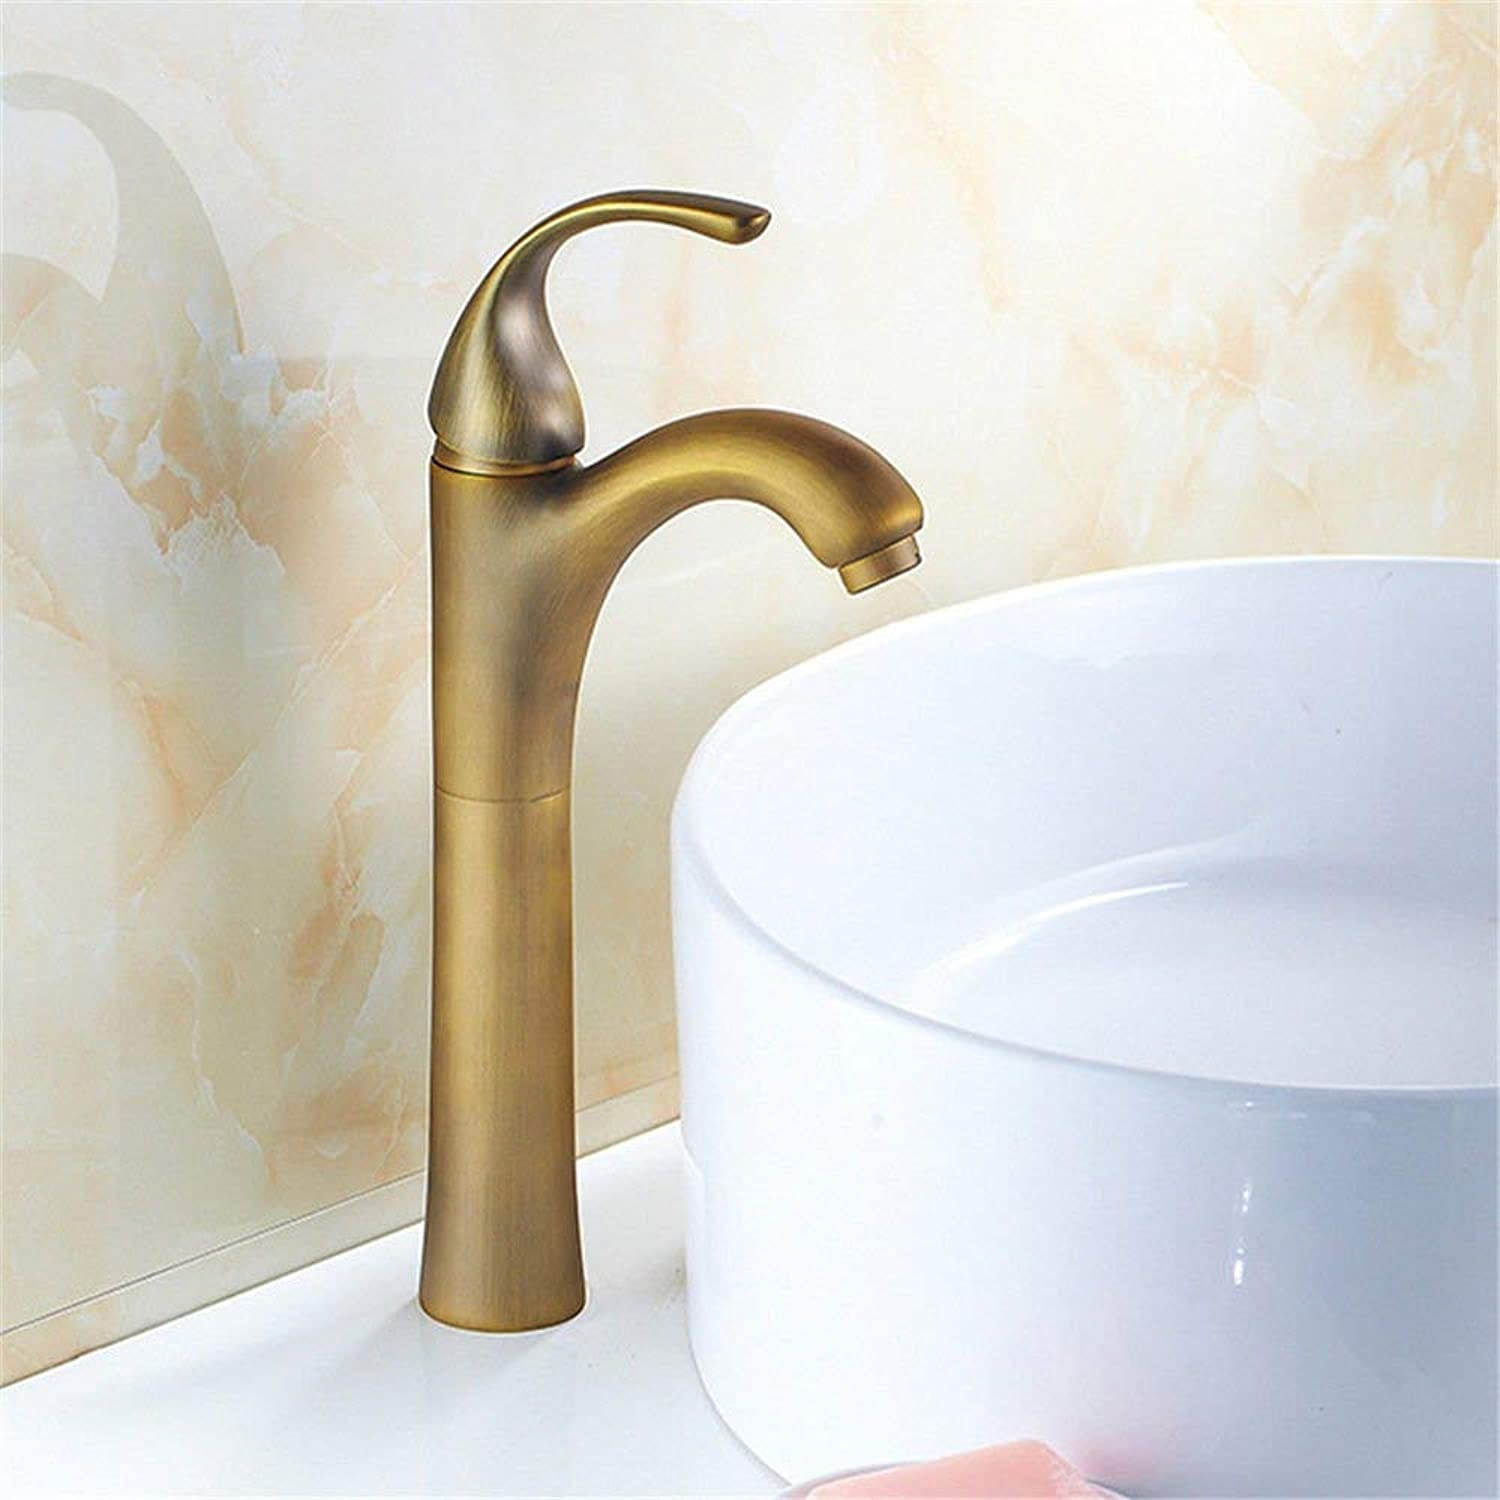 FERZA home Sink Mixer Tap Bathroom Kitchen Basin Tap Leakproof Save Water Retro Copper Bamboo Sink